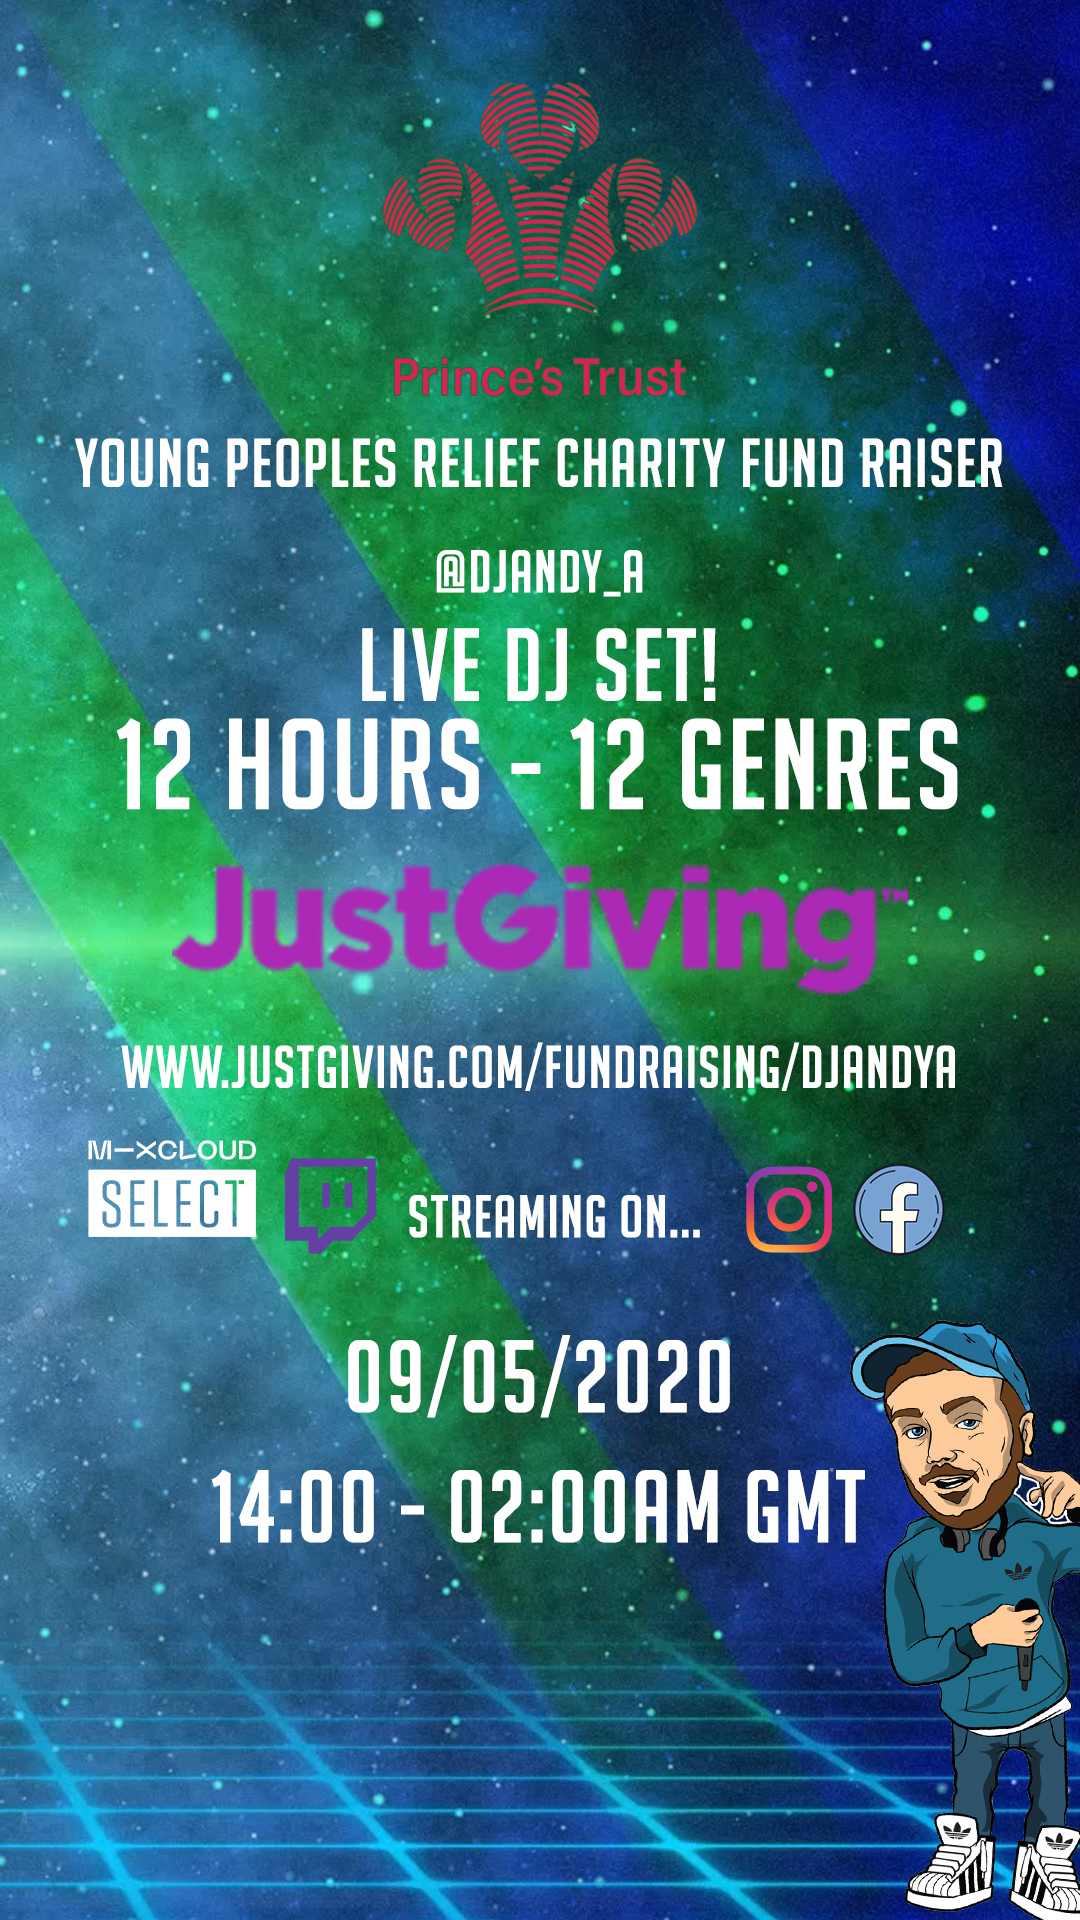 The Prince's Trust Young Peoples Relief Just Giving Fund Raiser - STAY AT HOME 12 Hours 12 Genres Live DJ Stream